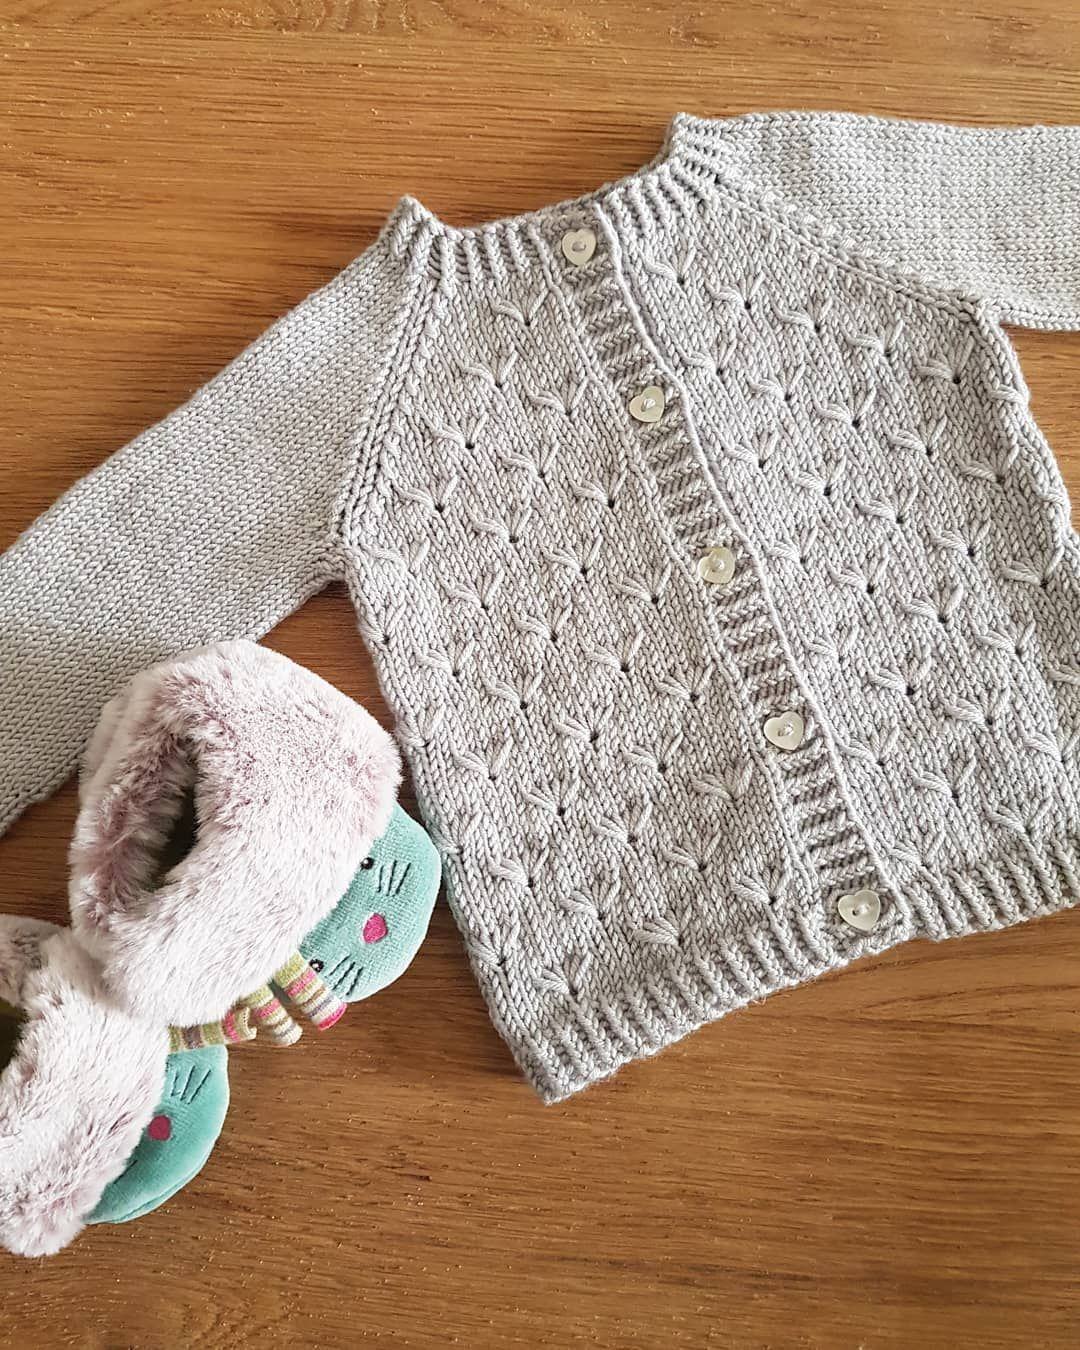 52 Free Beautiful Baby Knitting & Crochet Patterns for 2019 - Page 24 of 56 #babyknittingpatterns